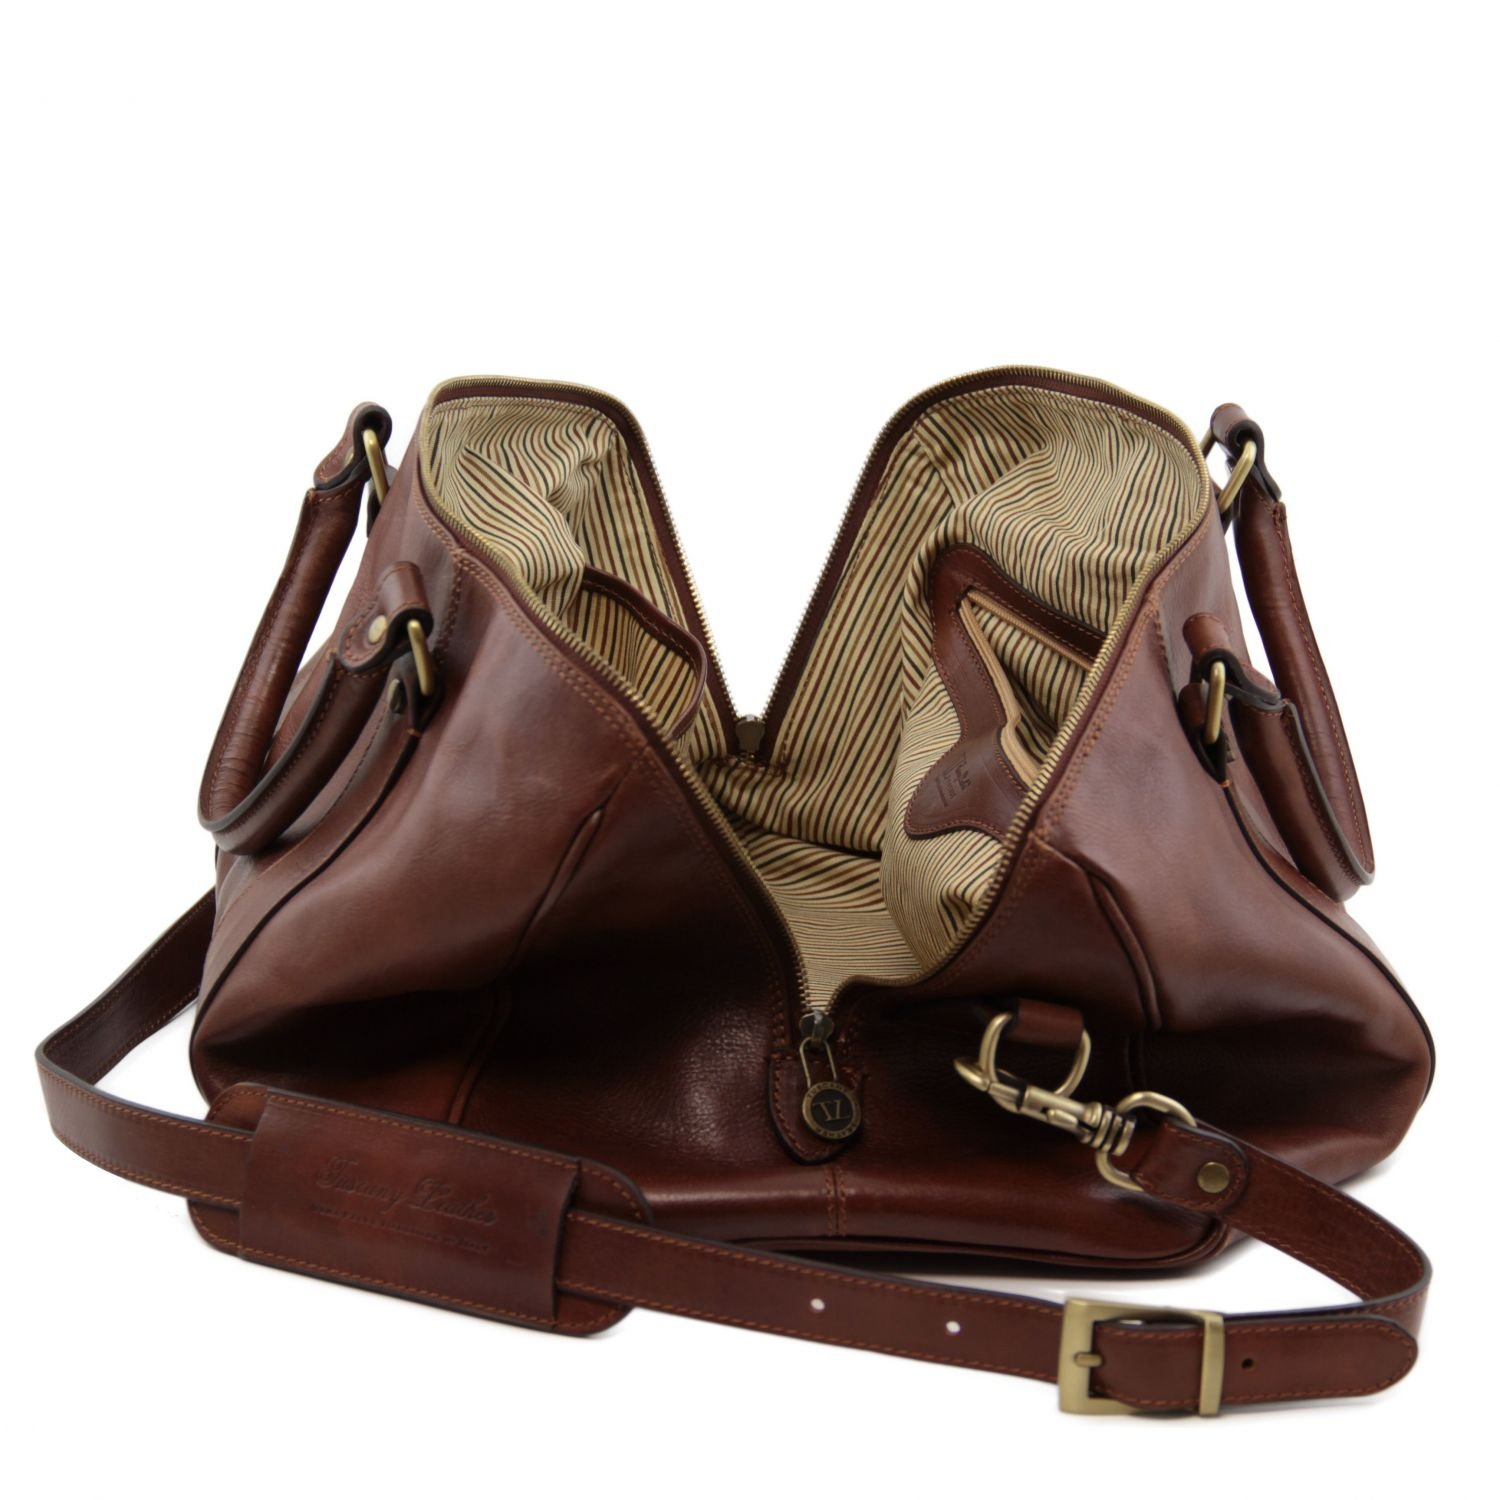 Small size Honey Tuscany Leather TL Voyager Travel leather duffle bag